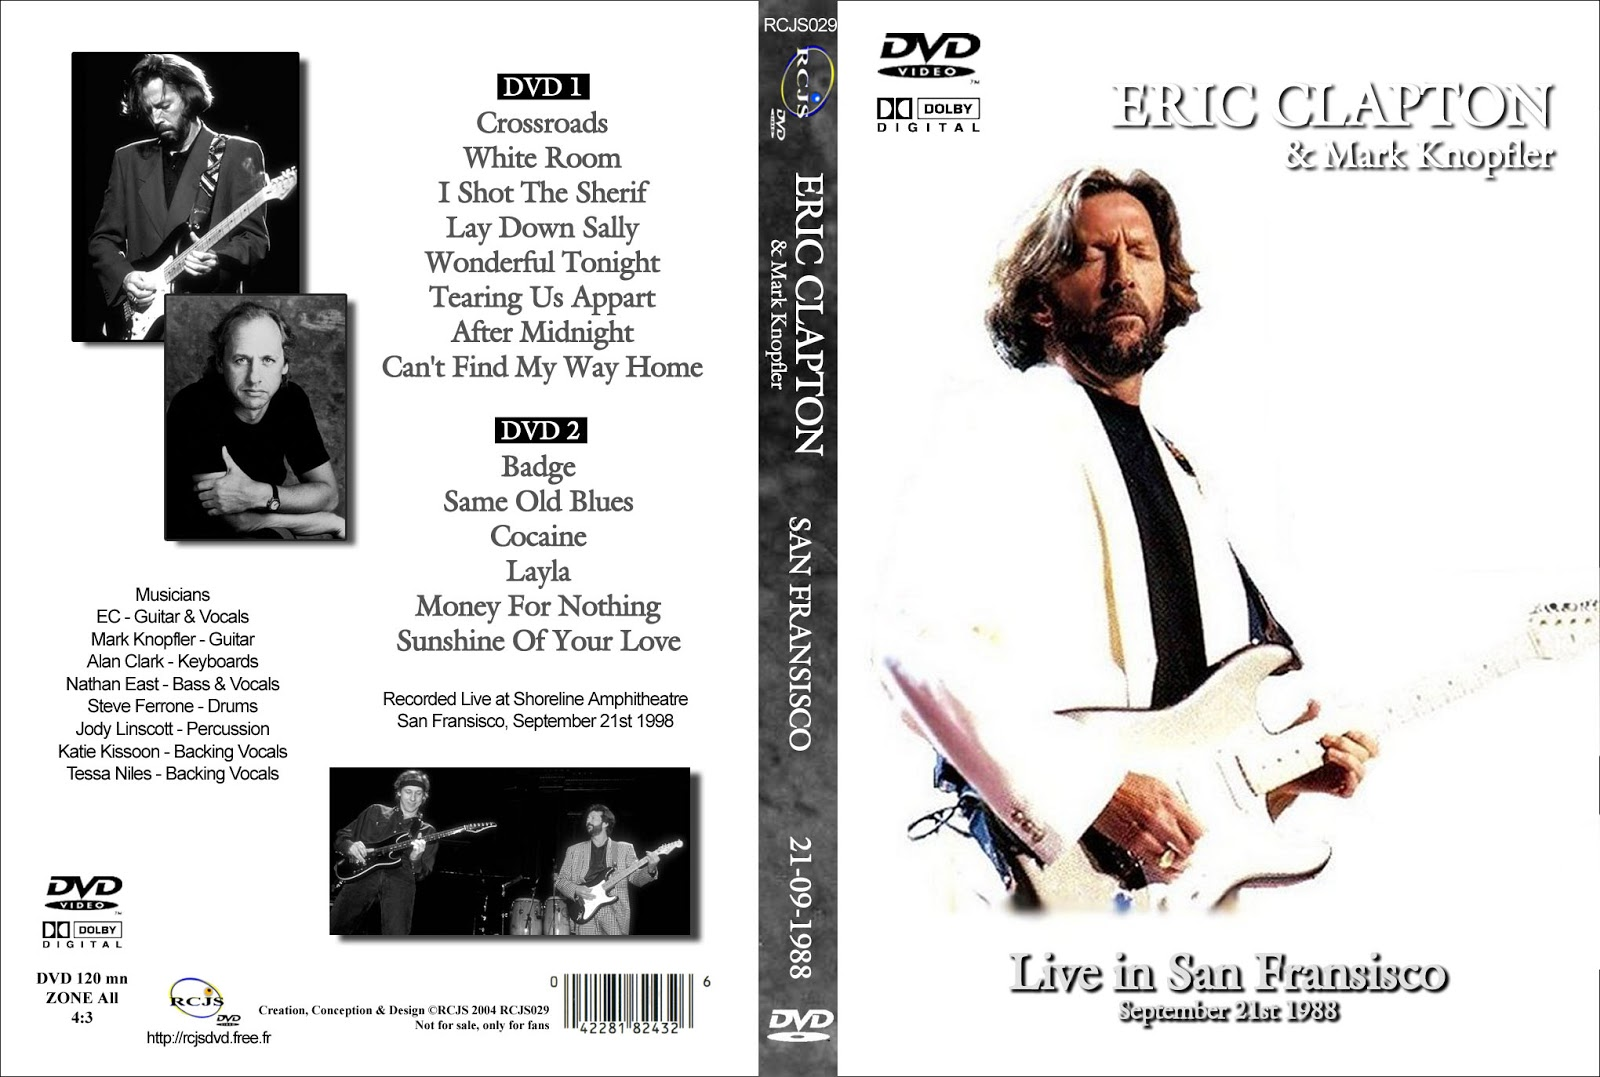 new eric clapton quot can t find my way home quot guitar tab eric clapton on tour with knopfler shoreline 508